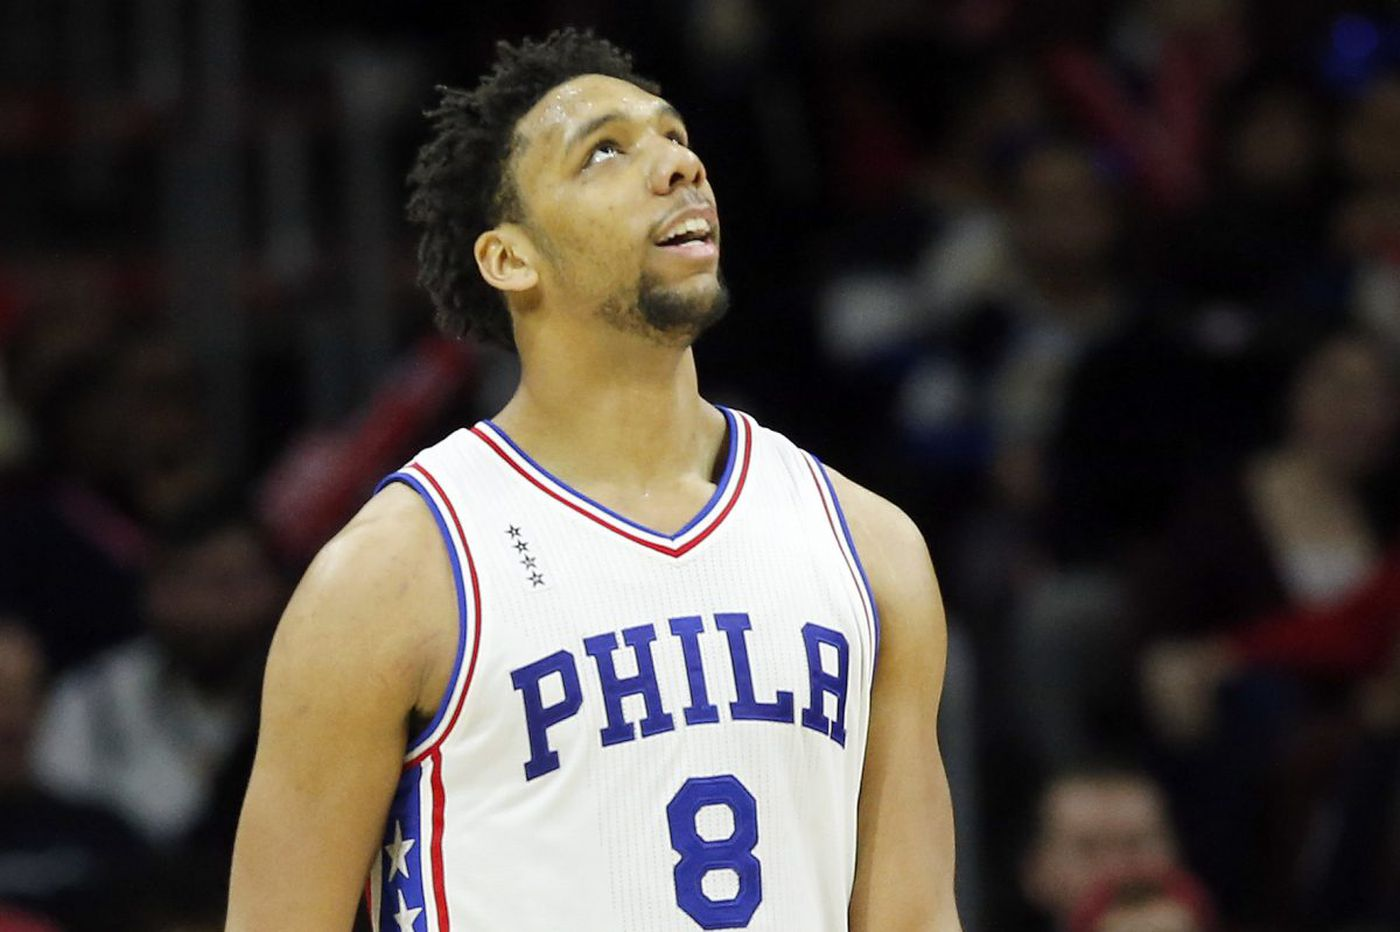 Trade rumors are heating up again for Jahlil Okafor